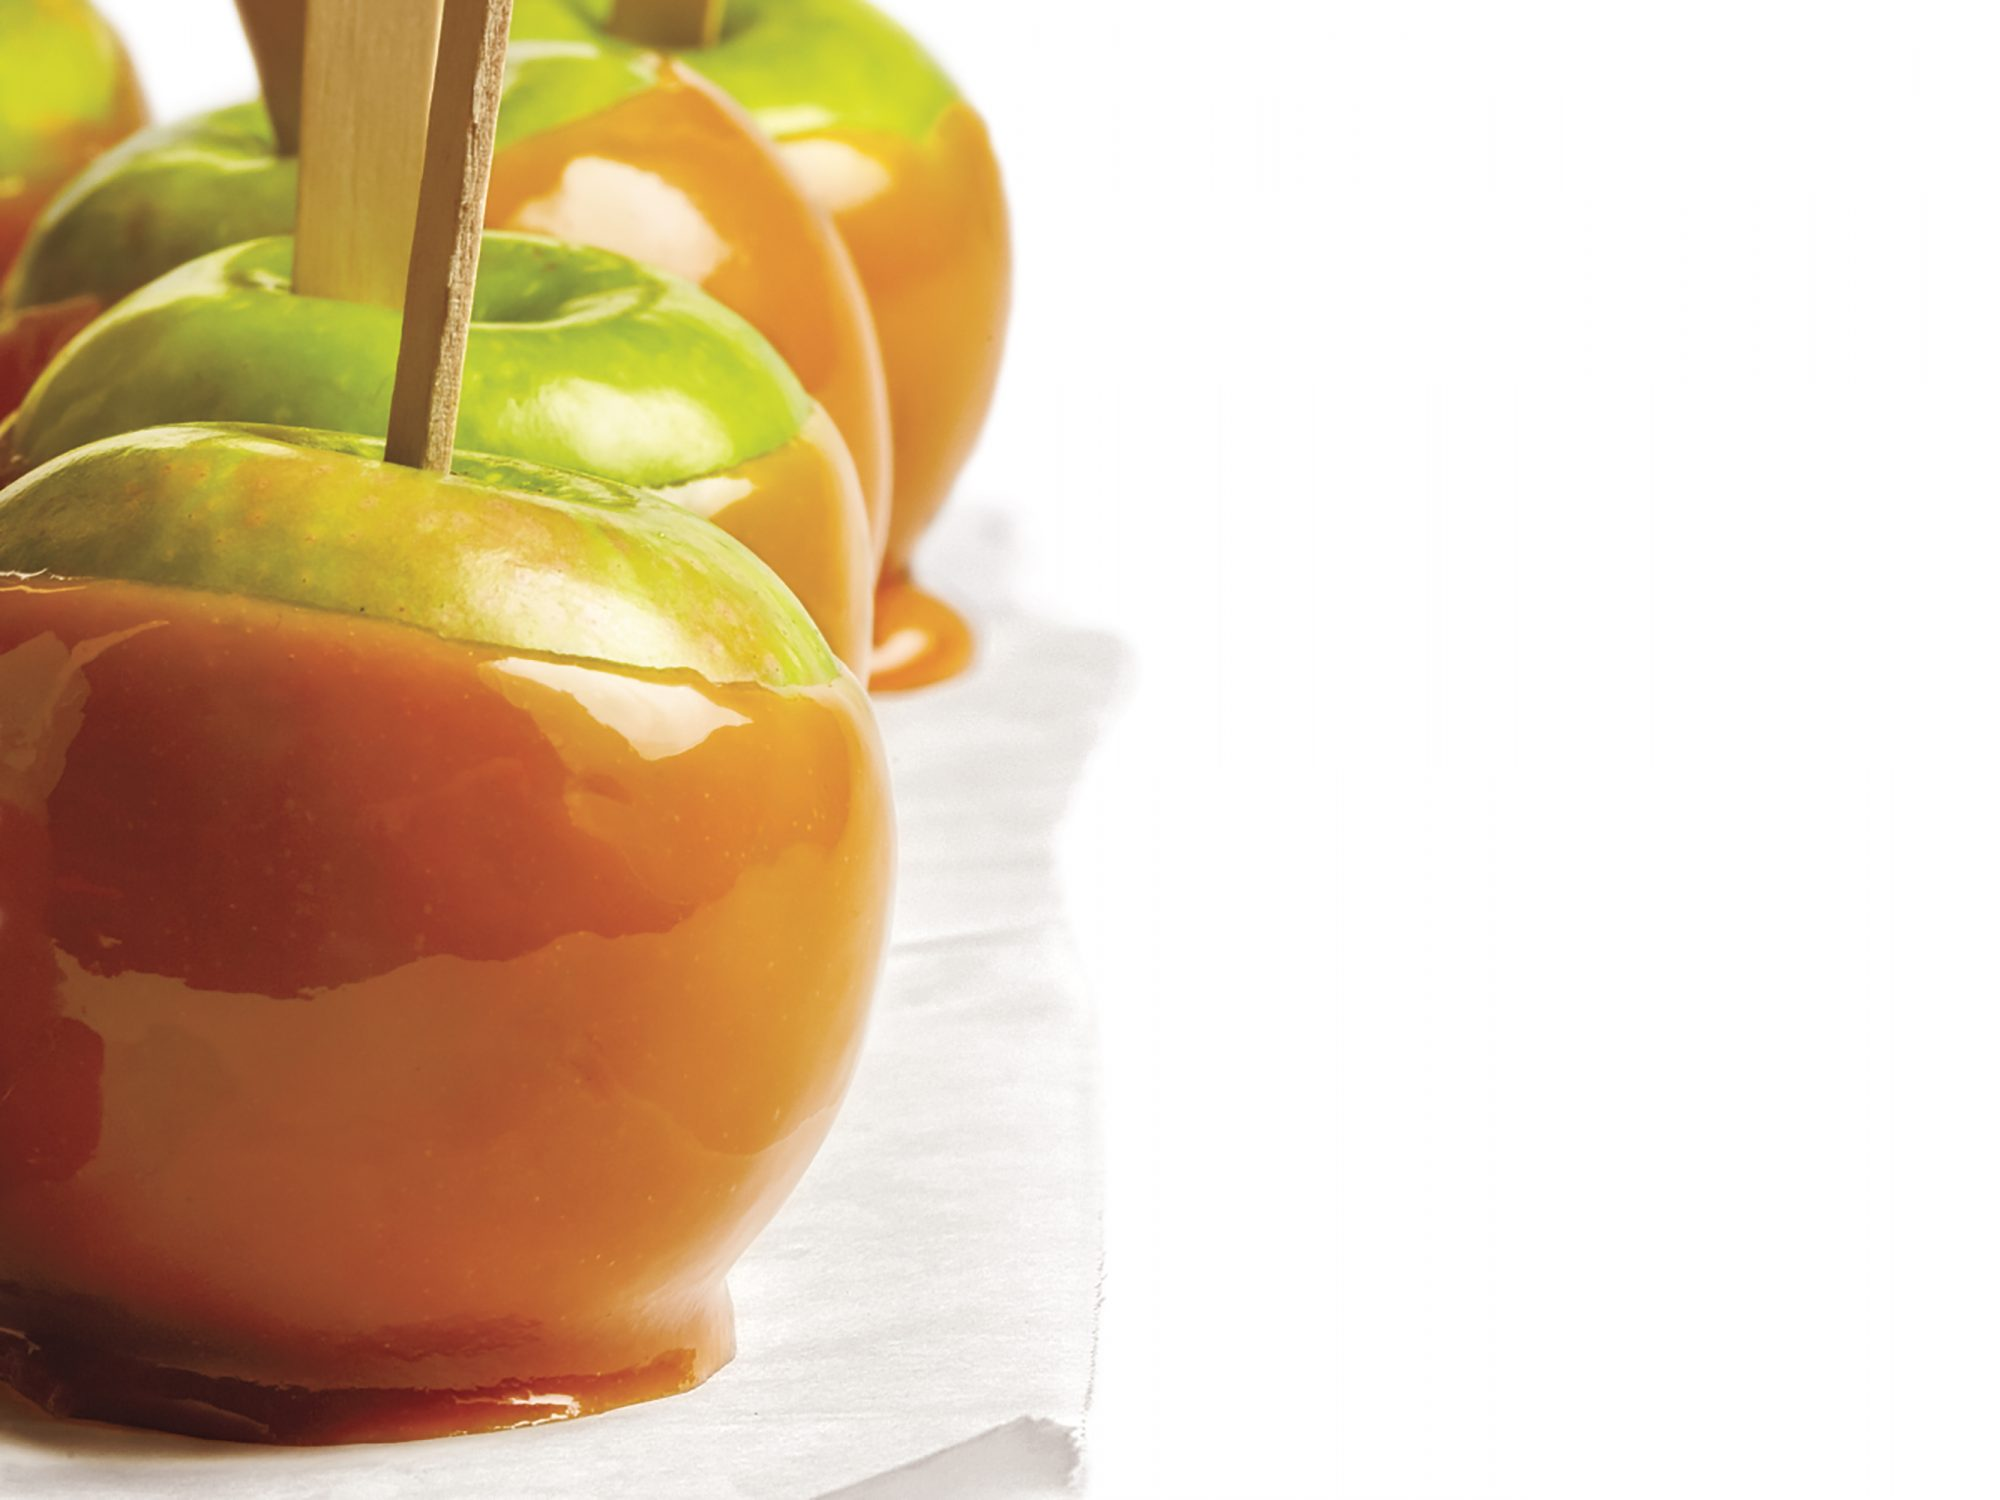 Caramel Apples Recipe Myrecipes